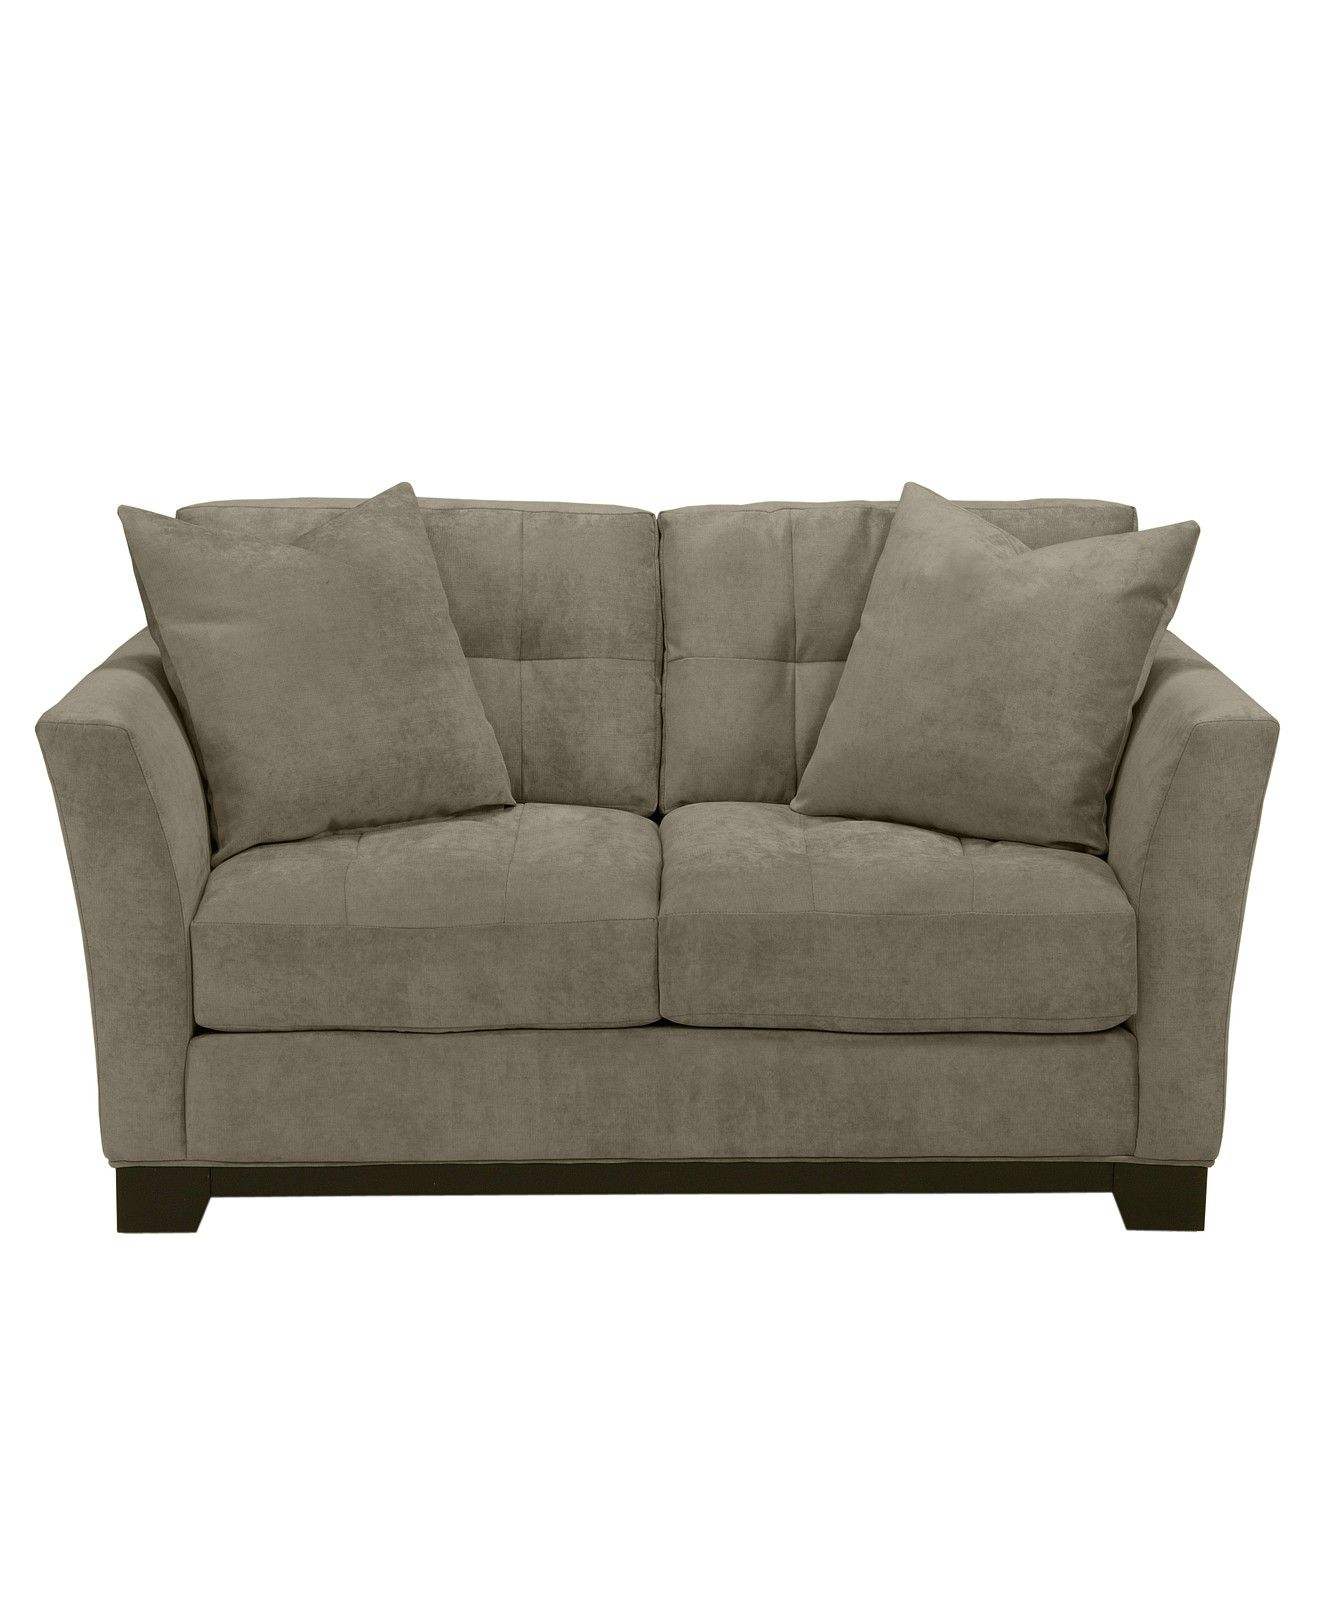 Elliot Fabric Microfiber Loveseat Couches & Sofas Furniture